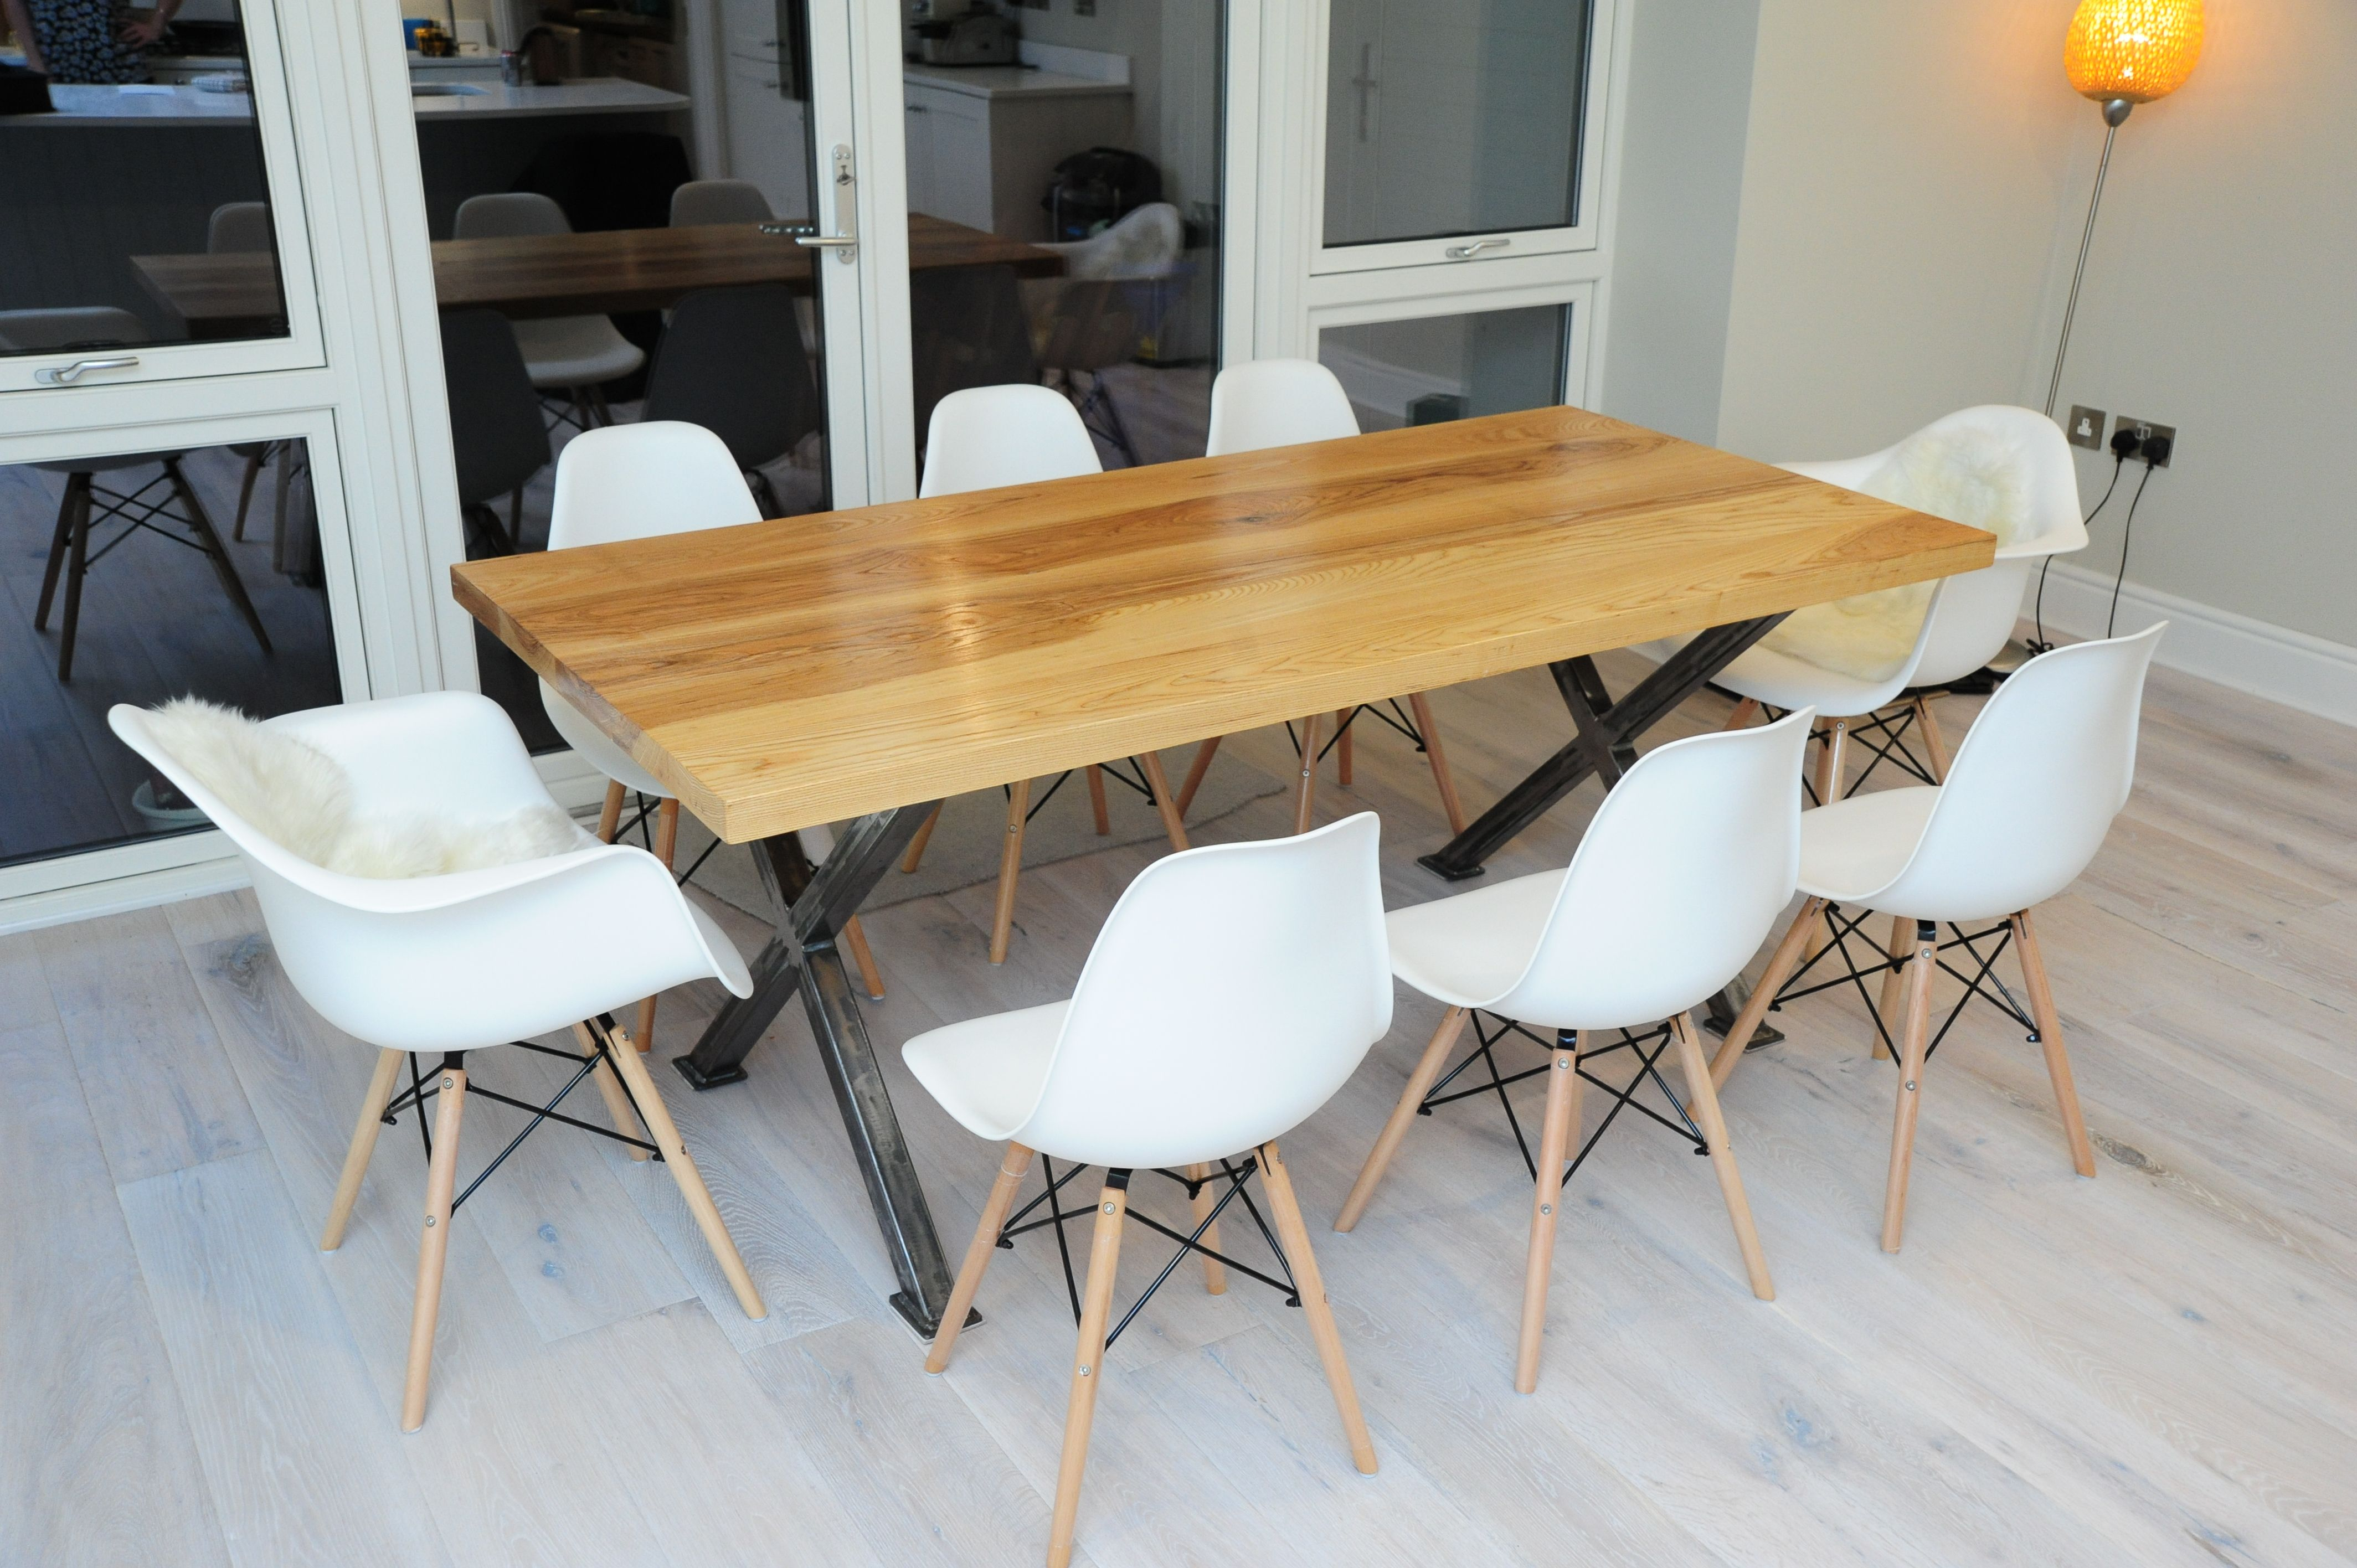 bright and fresh eames dsw style chairs around a solid ash and rh pinterest com